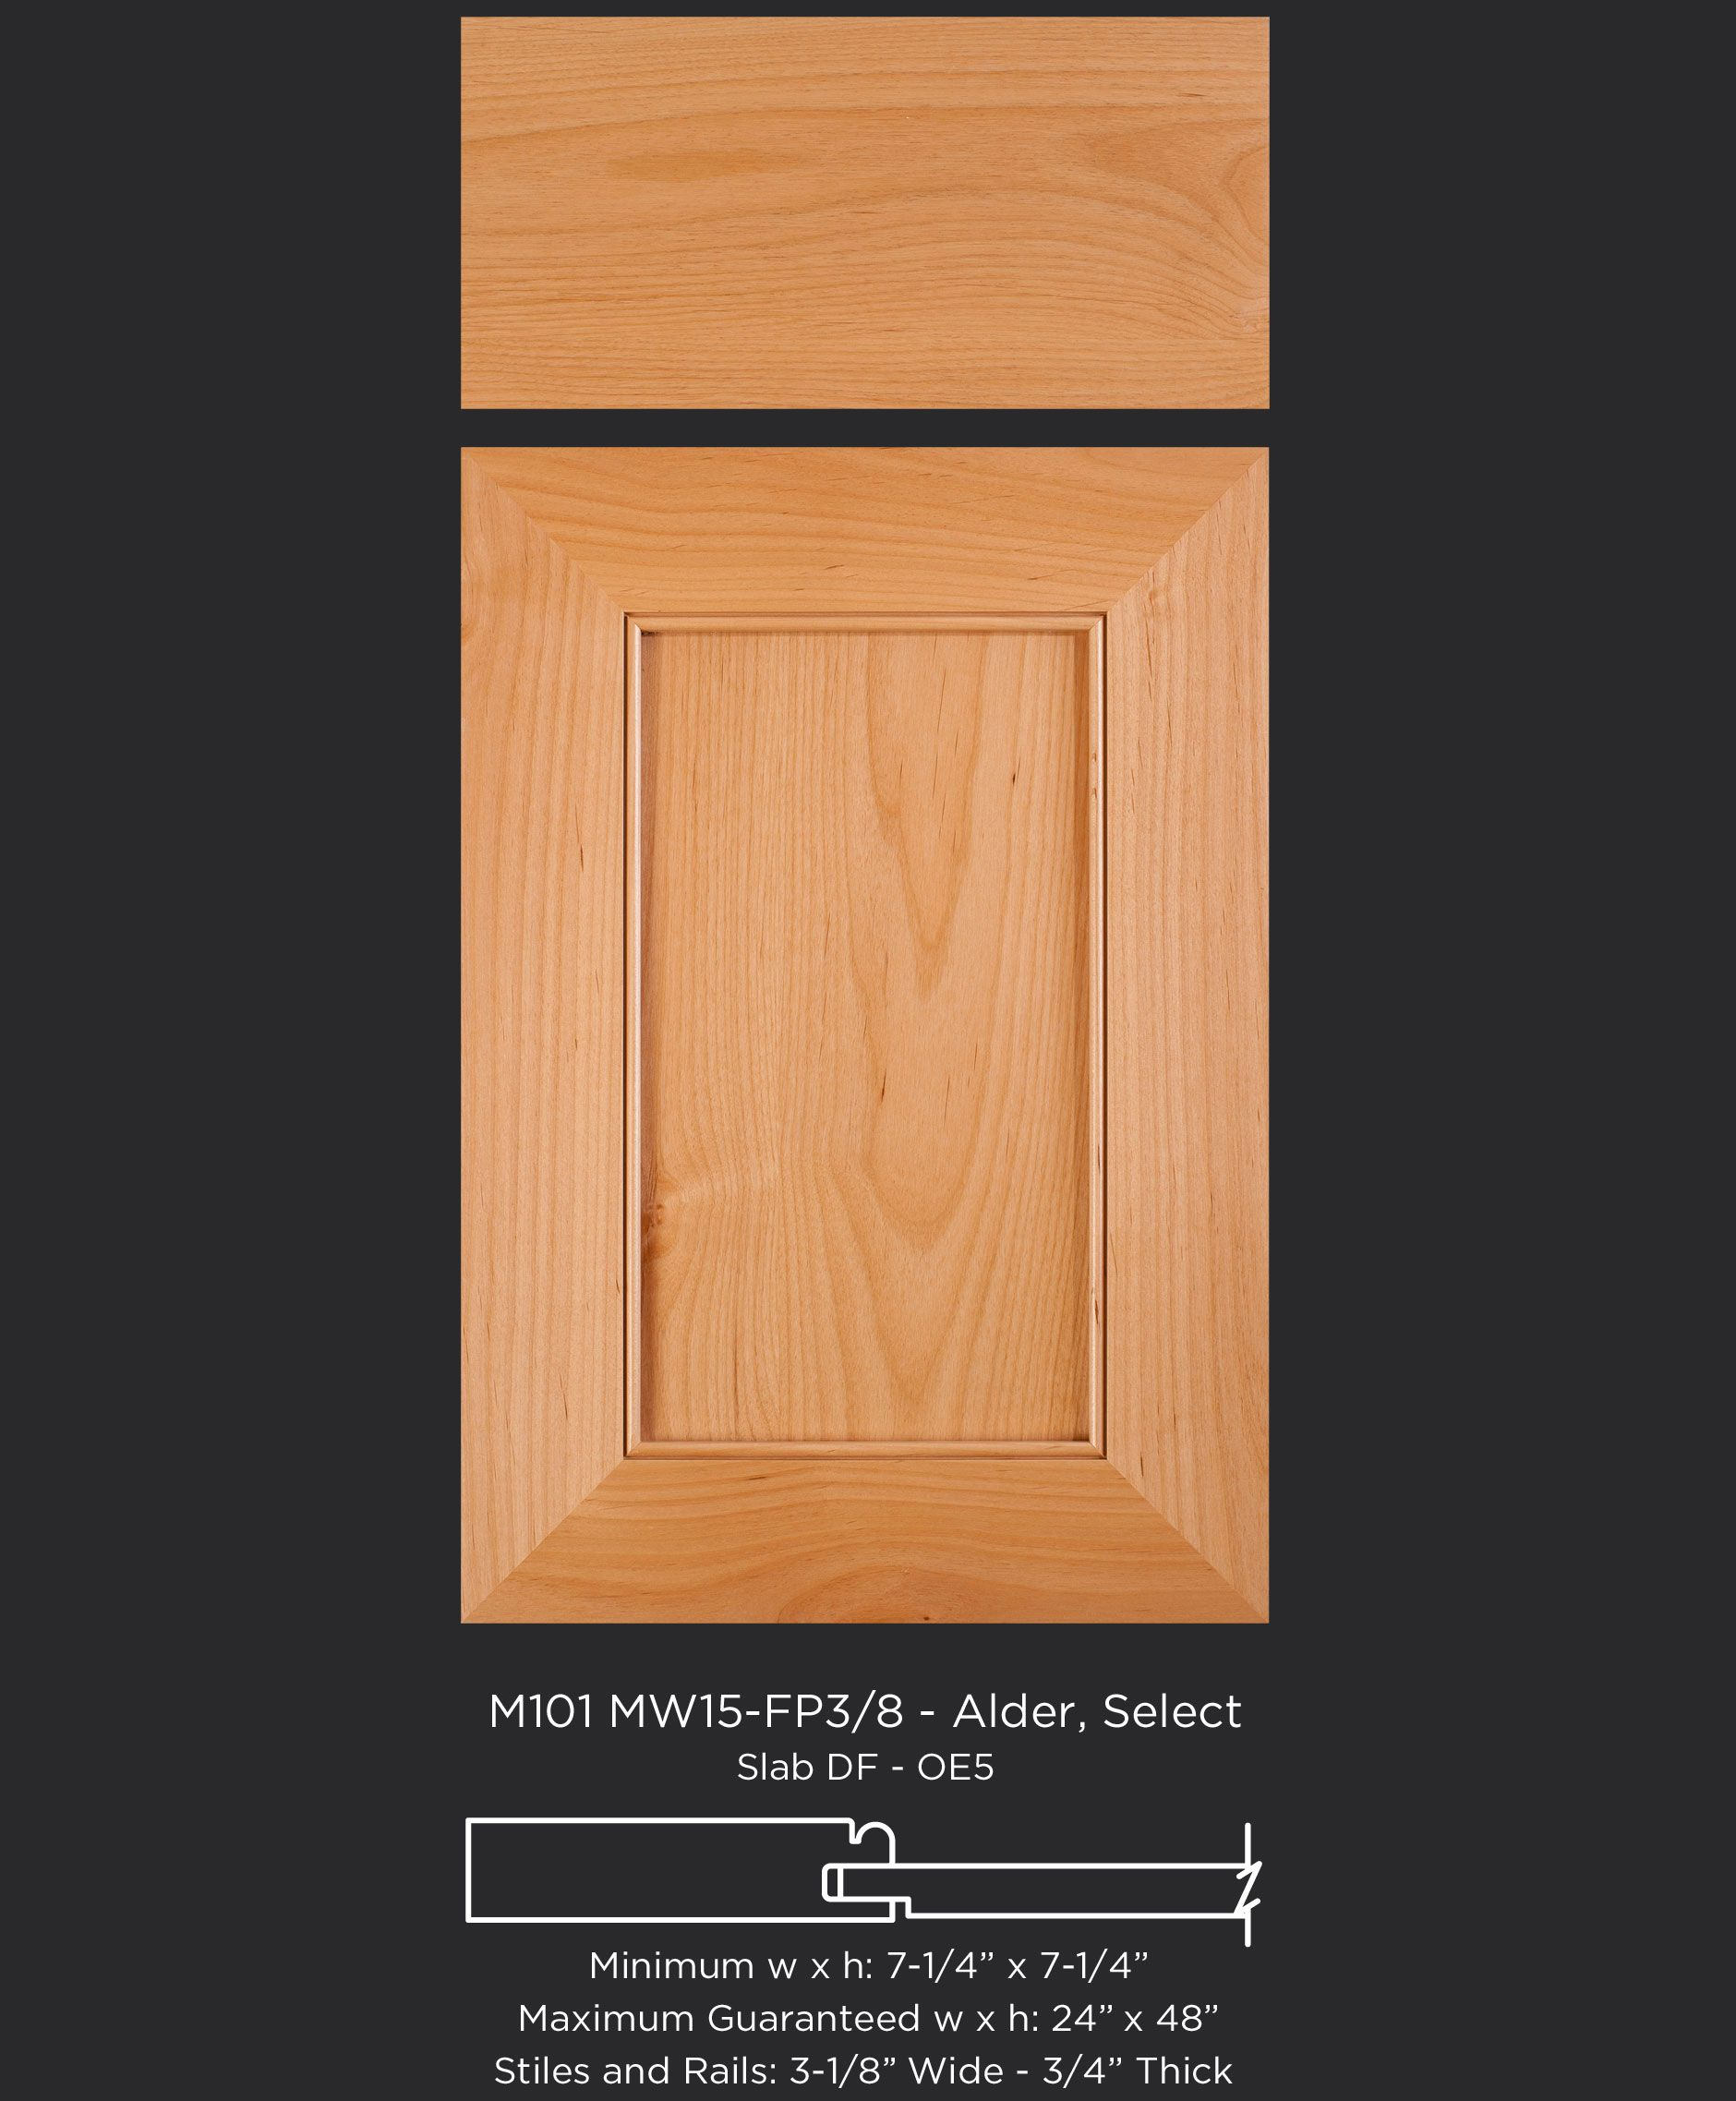 Doors and drawers adobe contemporary style flat panel cabinet door - Floor To Ceiling Quartered Walnut Echowood Veneer Cabinet Doors Horizontal Grain Kitchen Cabinets Combined With White Countertops And Walls